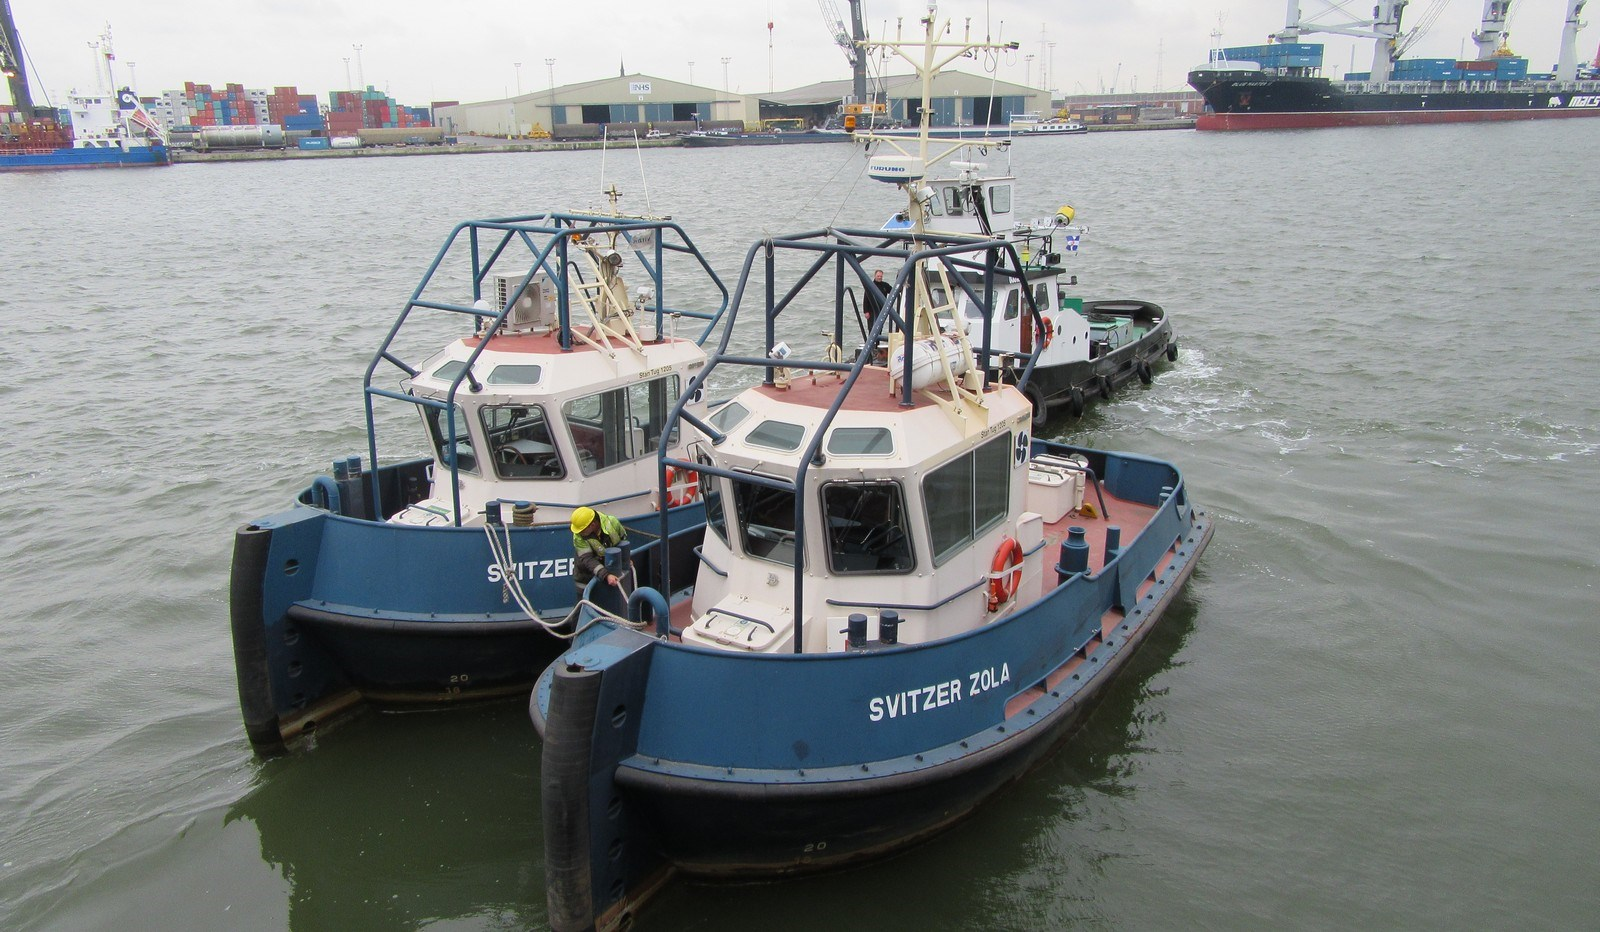 Both vessels have always been very well maintained and are in an excellent condition